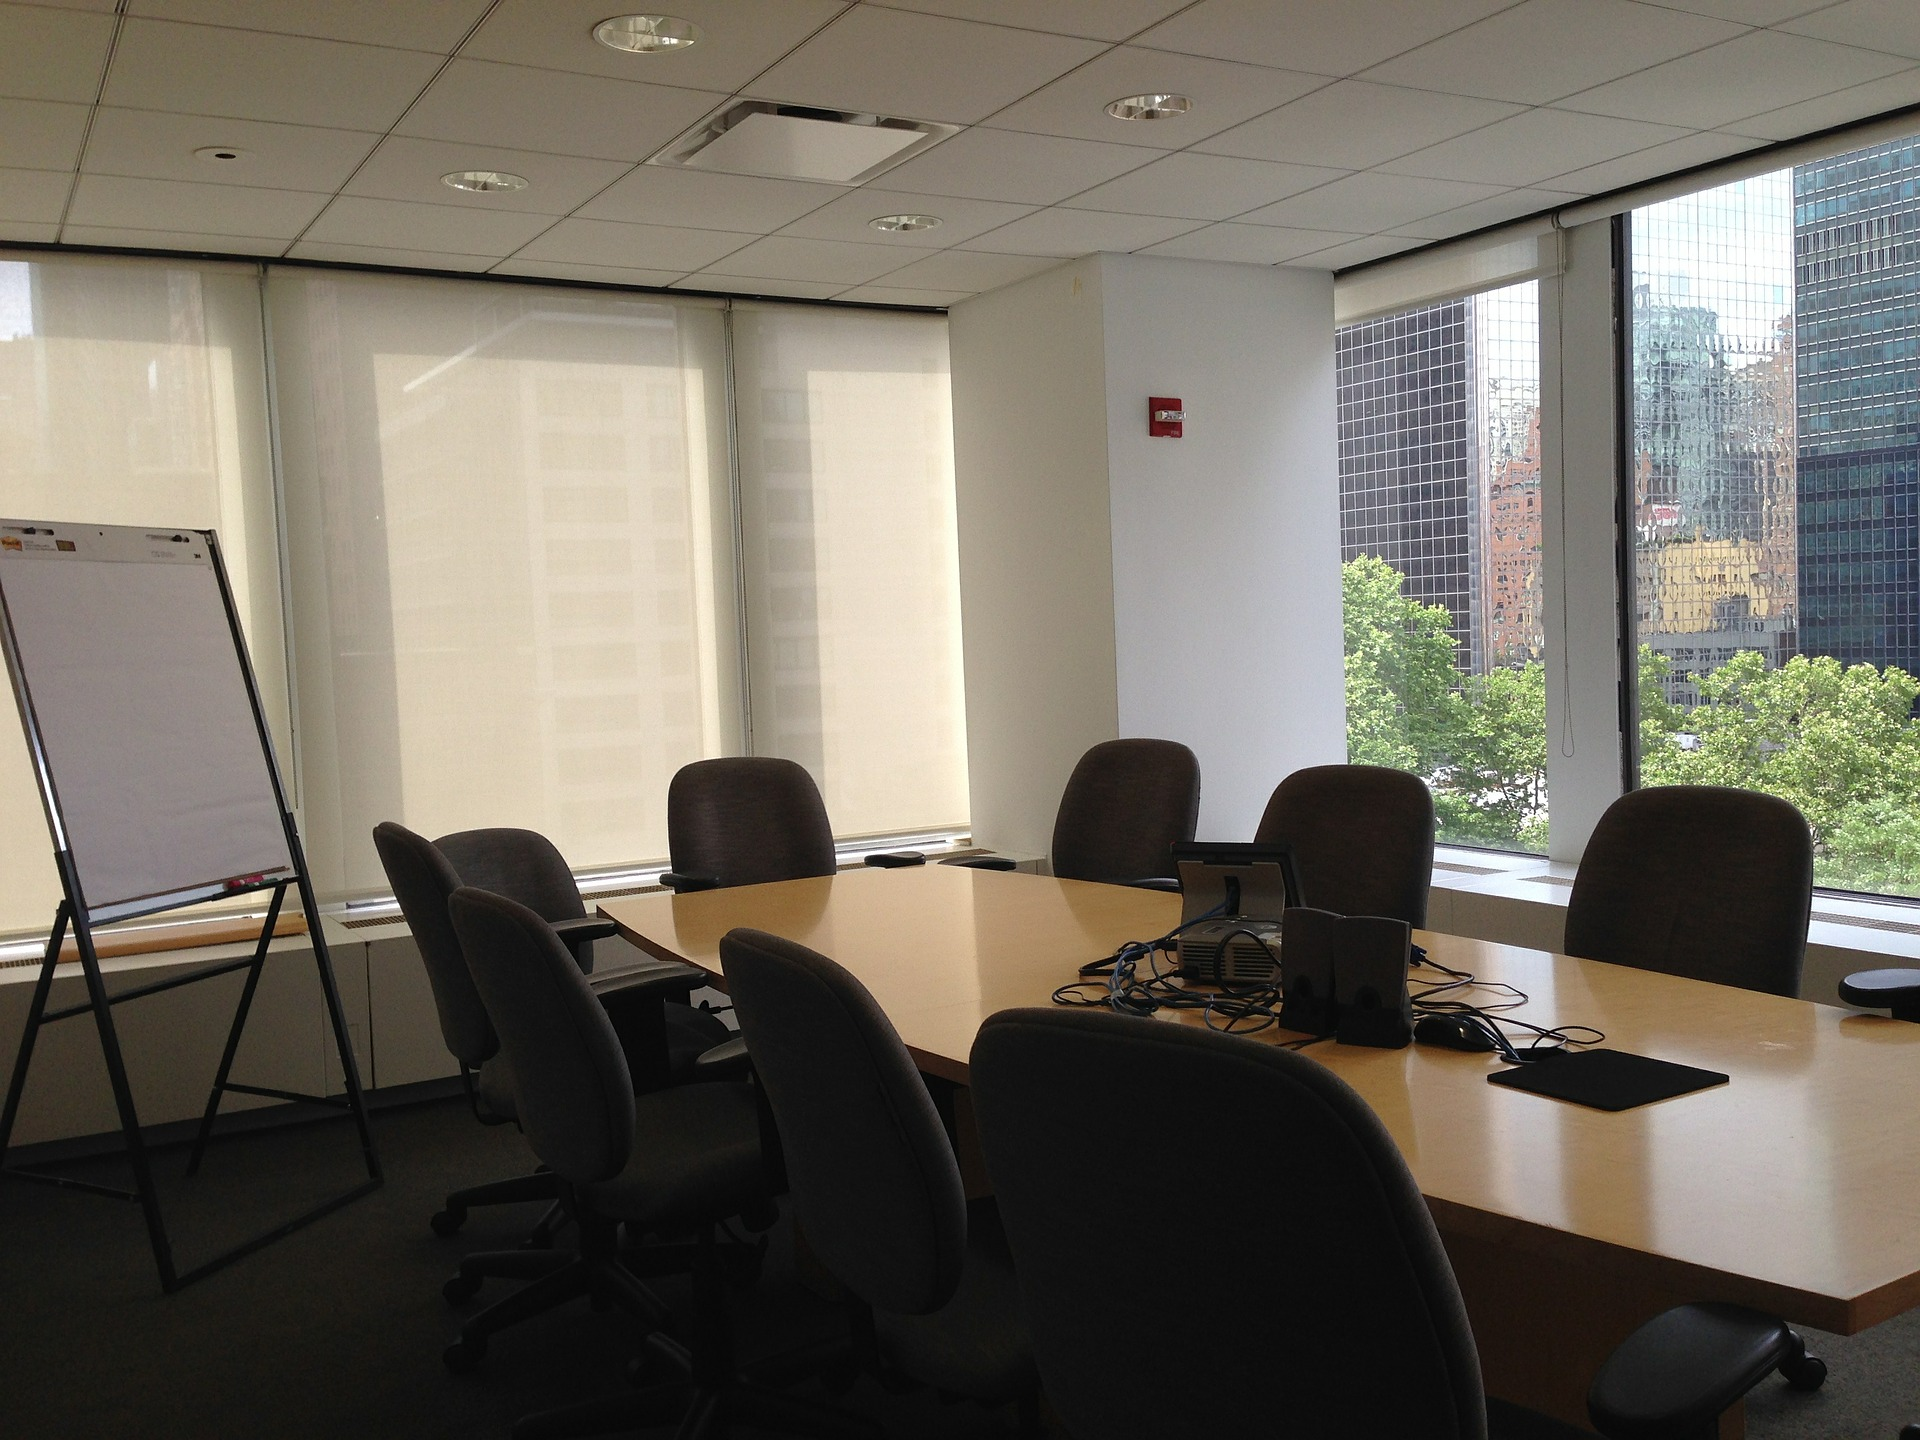 conference-room-386366_1920